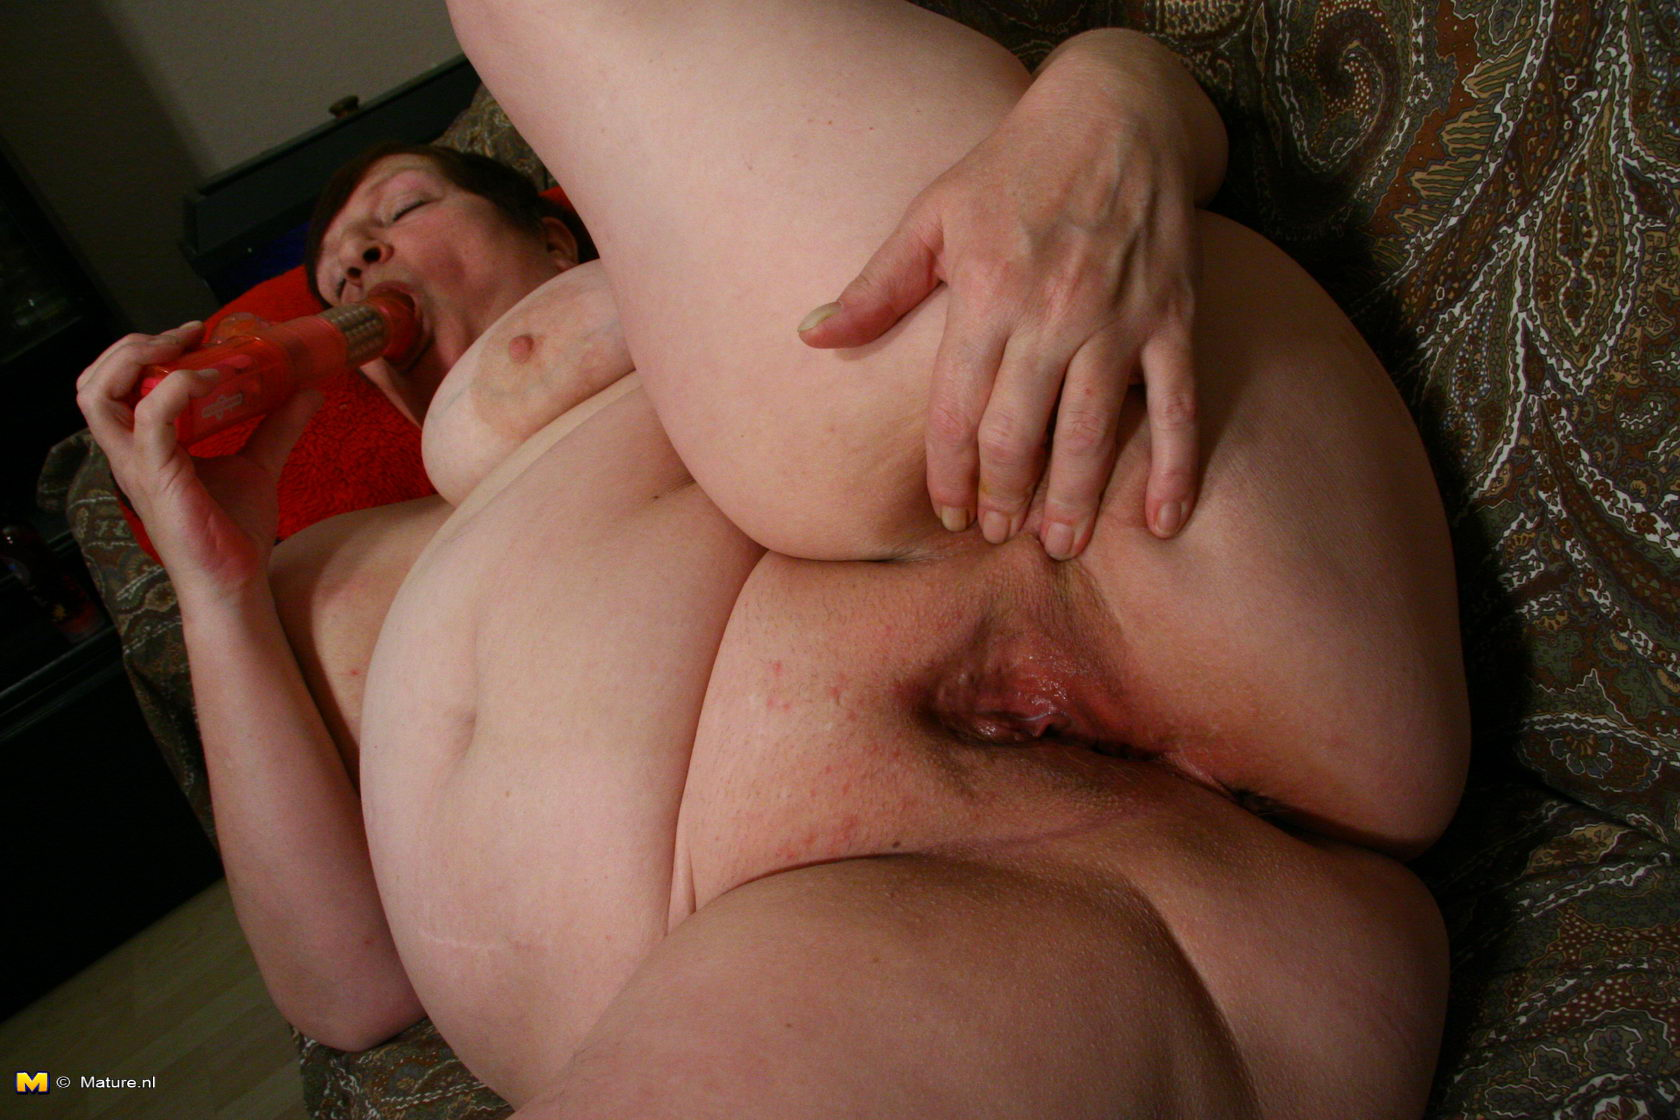 Chubby mature lady playing with her pussy 2